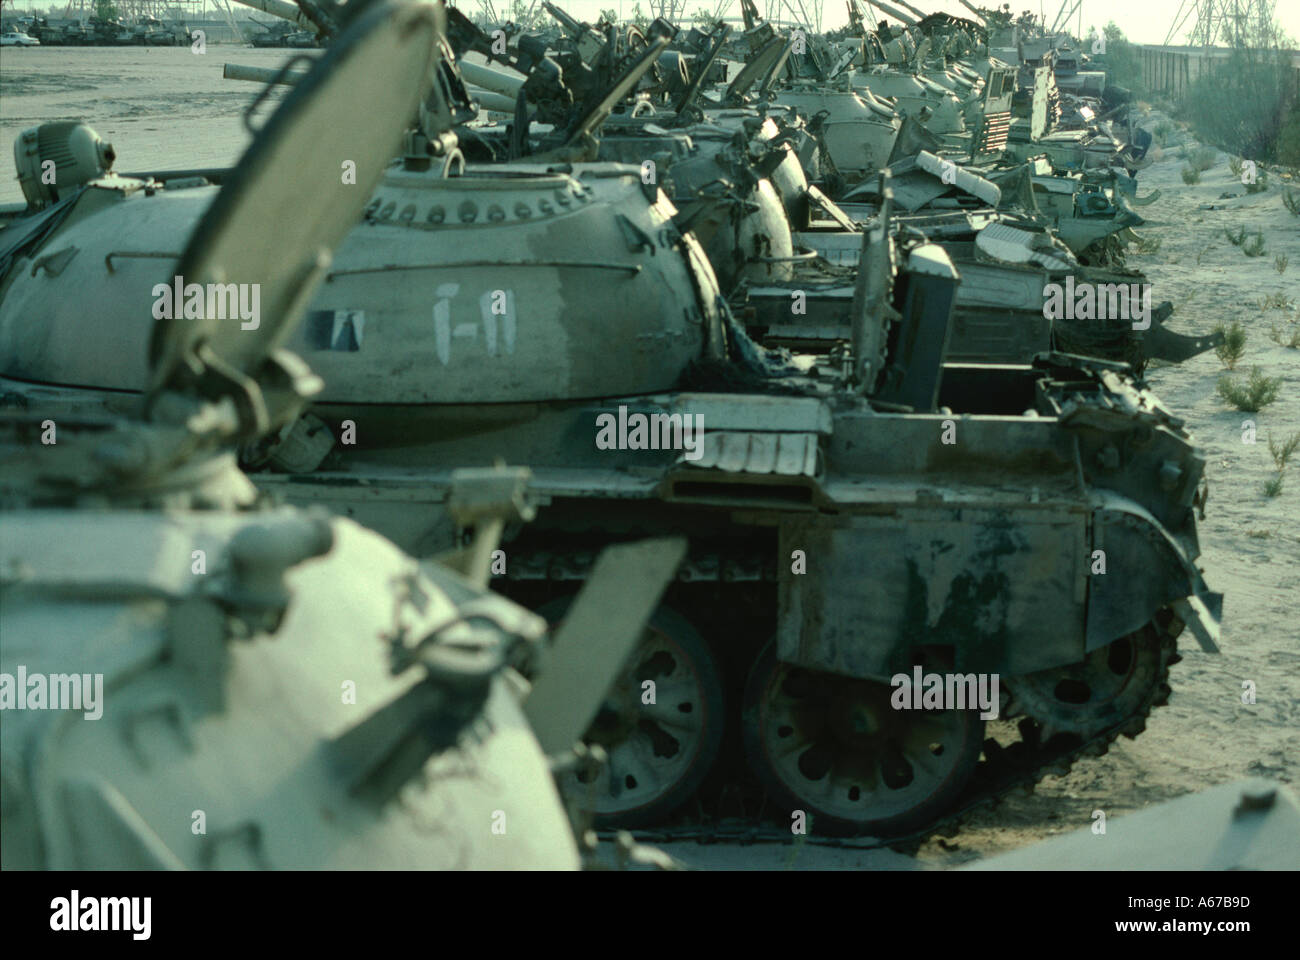 Captured Iraqi Tanks on show in Kuwait after the first Gulf War - Stock Image